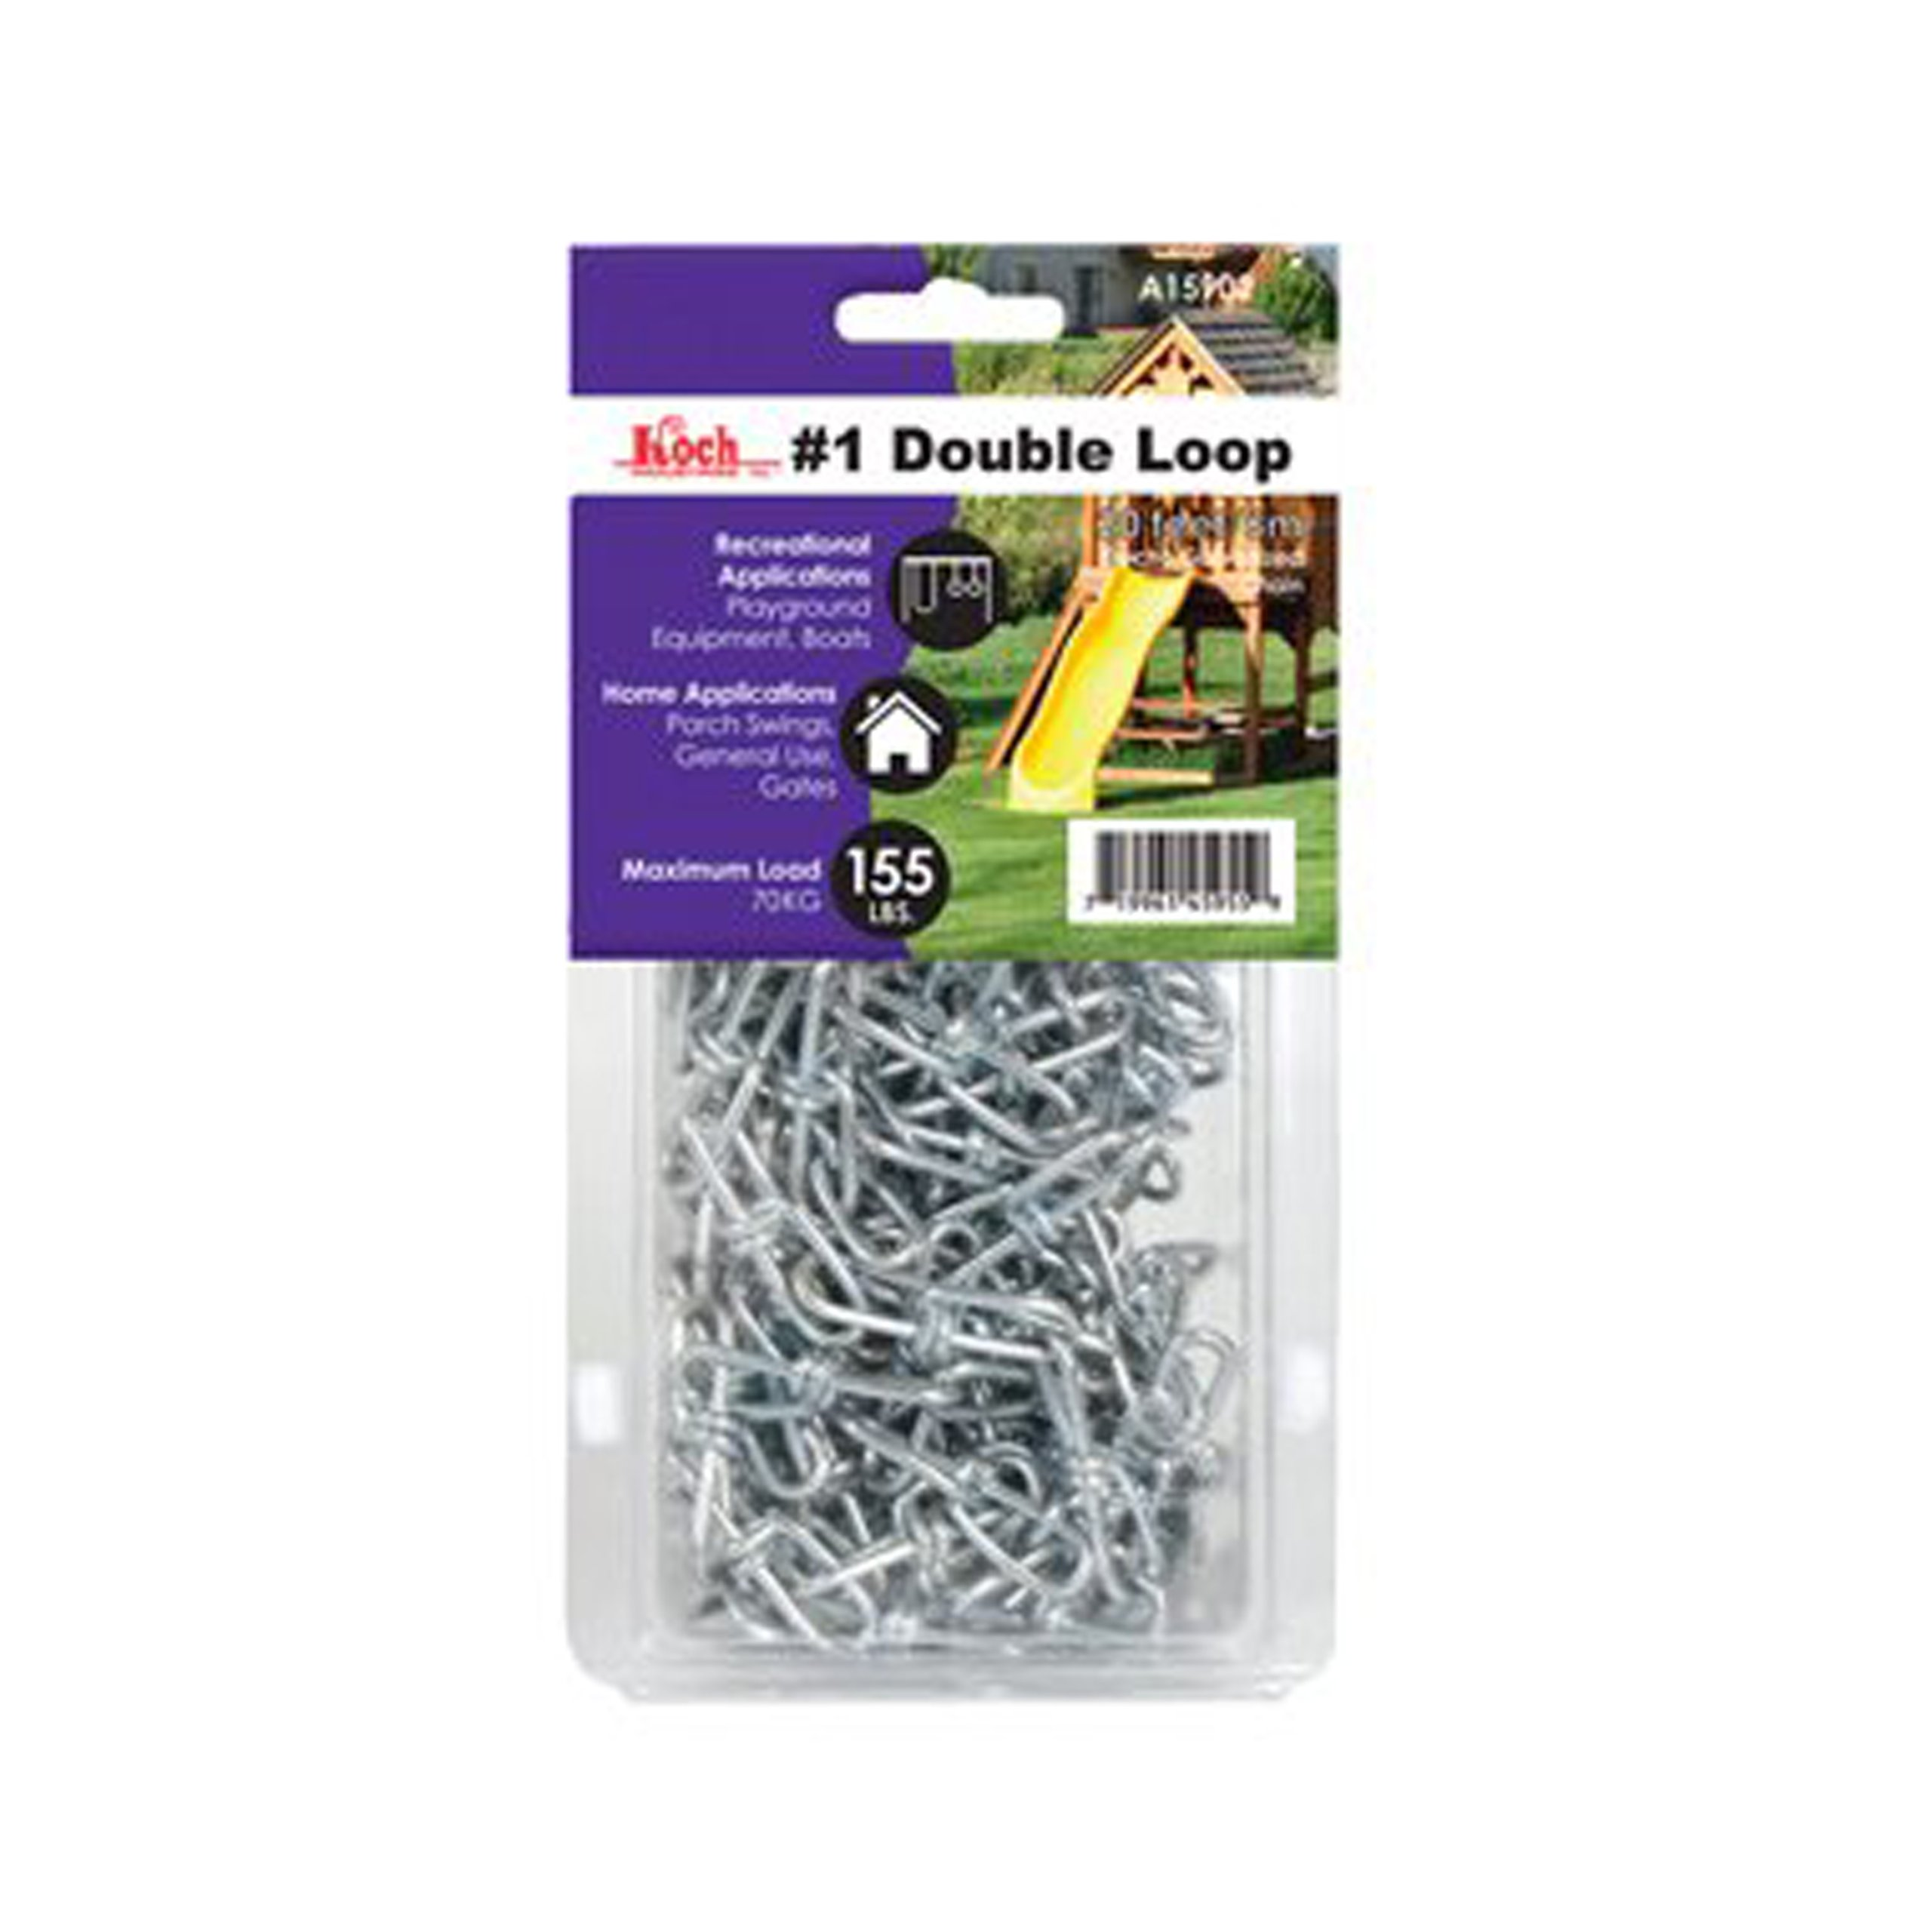 Koch A15922 2/0 by 20-Feet Double Loop Chain, Zinc Plated